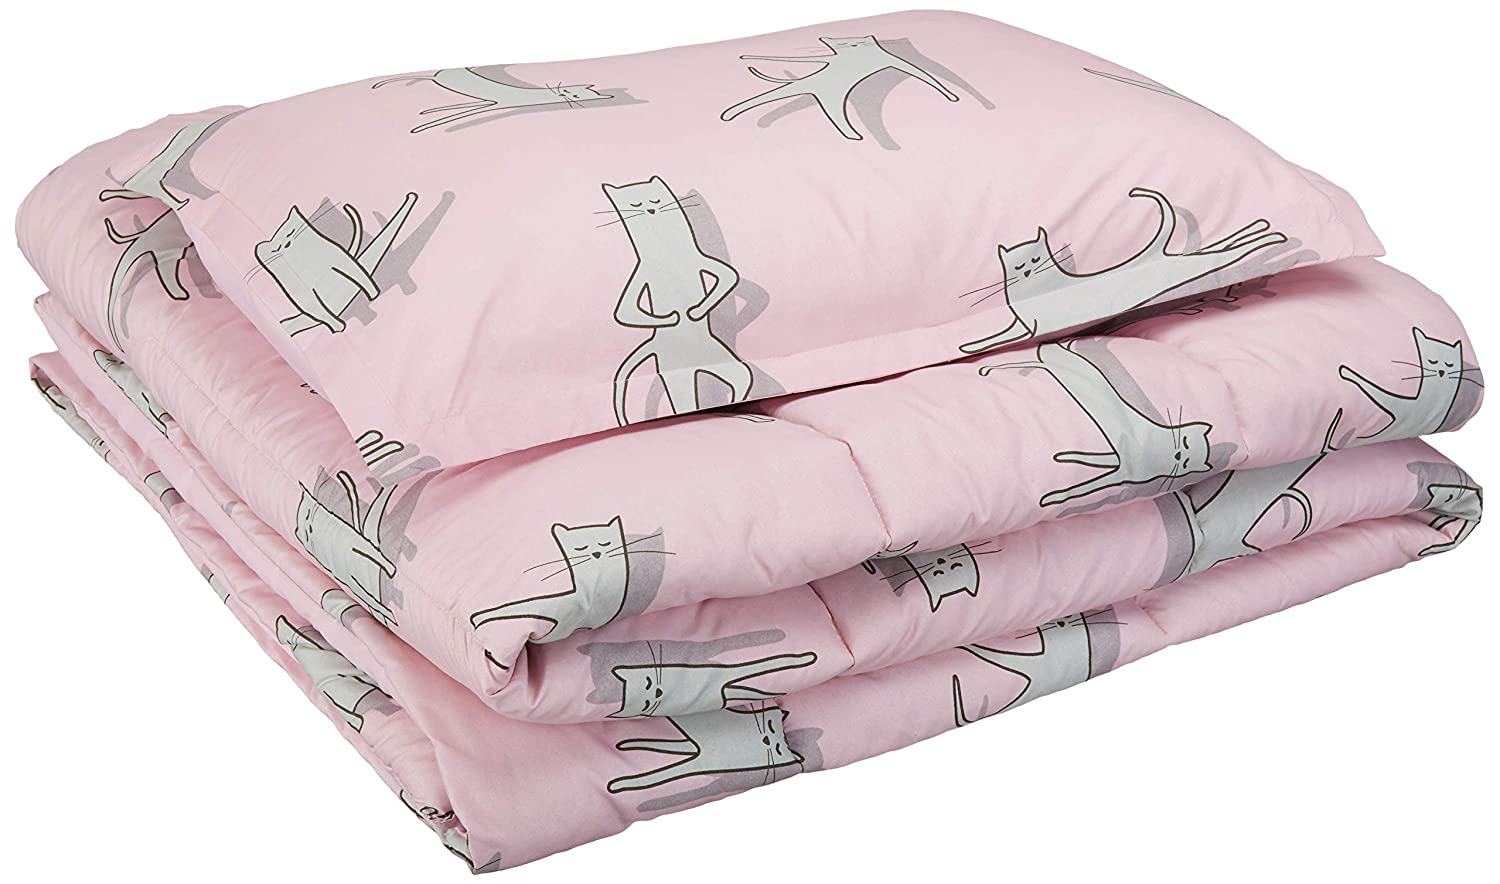 AmazonBasics Easy-Wash Microfiber Kid's Comforter and Pillow Sham Set - Twin, Pink Cats